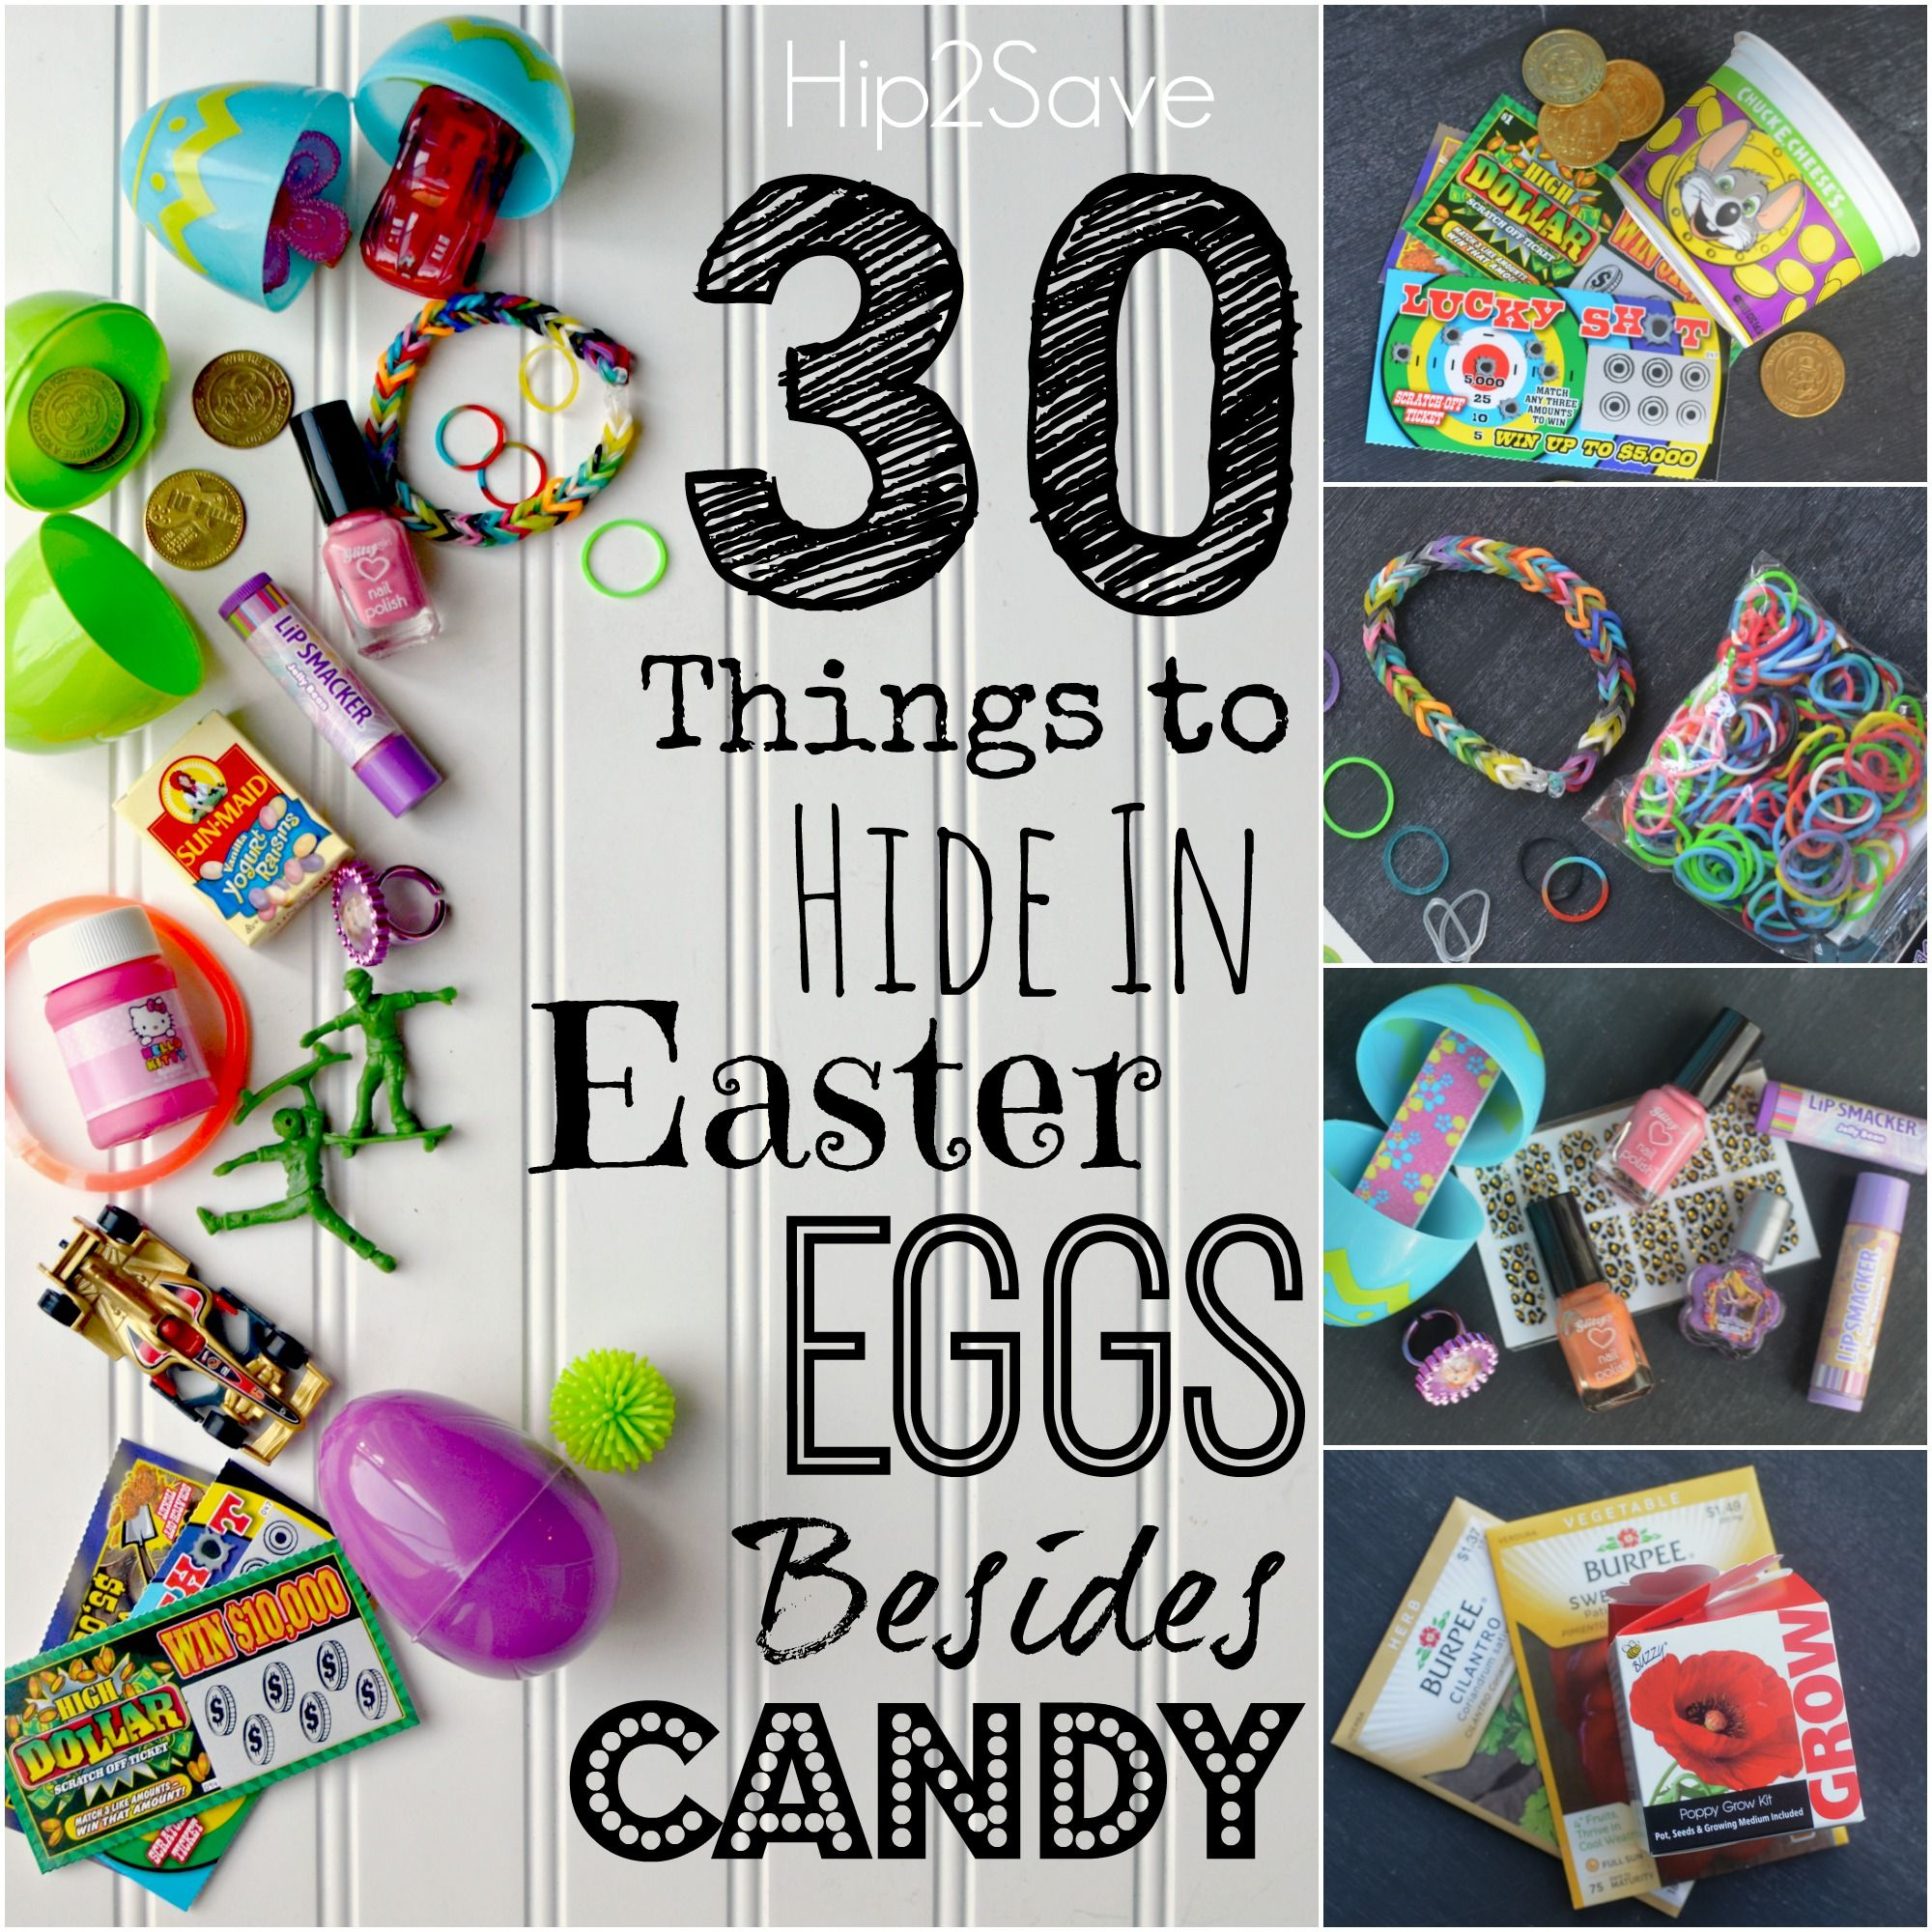 30 things to hide in easter eggs besides candy easter egg and 30th 30 things to hide in easter eggs besides candy by hip2save its not your grandmas coupon site negle Choice Image